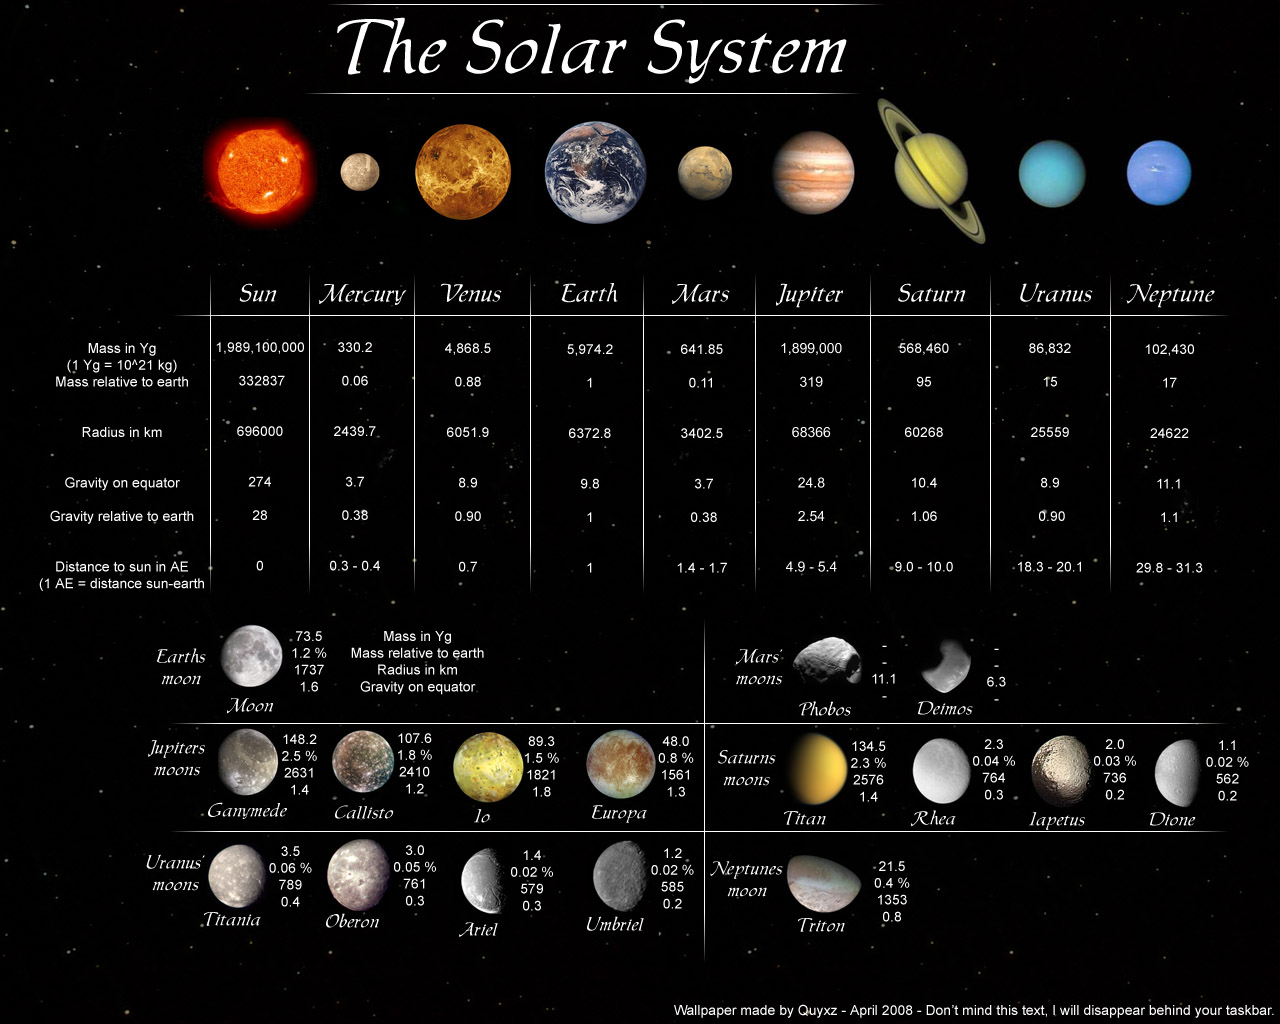 diagram of planets real 12 volt pumpe dauerbetrieb berkas the solar system wallpaper by quyxz jpg wikipedia